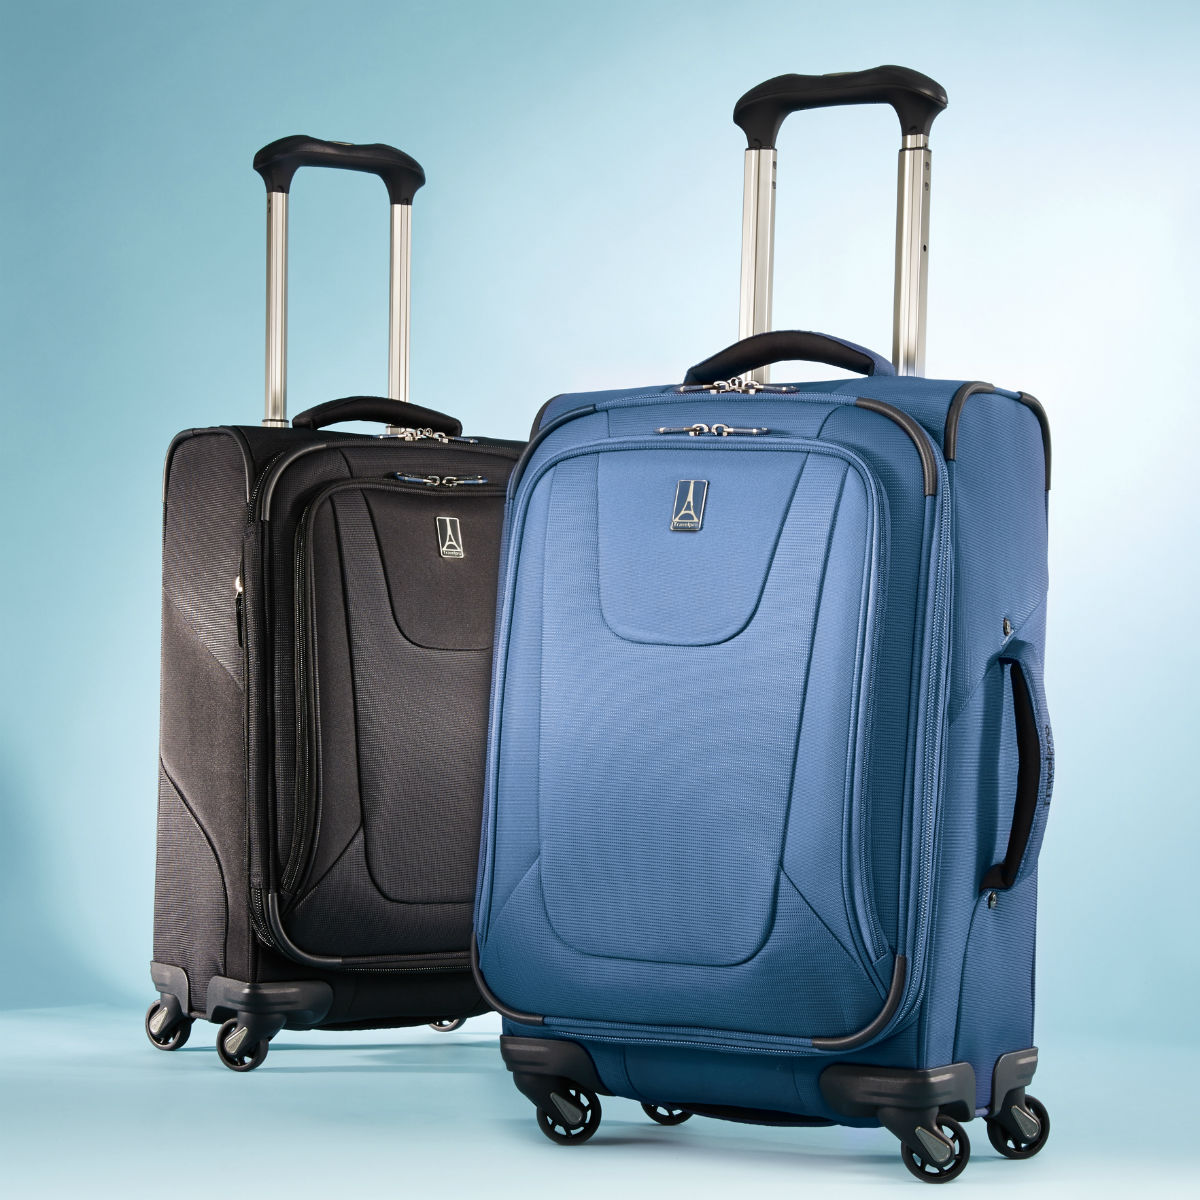 An Introduction Of Travelpro Luggage Maxlite 3 - Big Fan ...